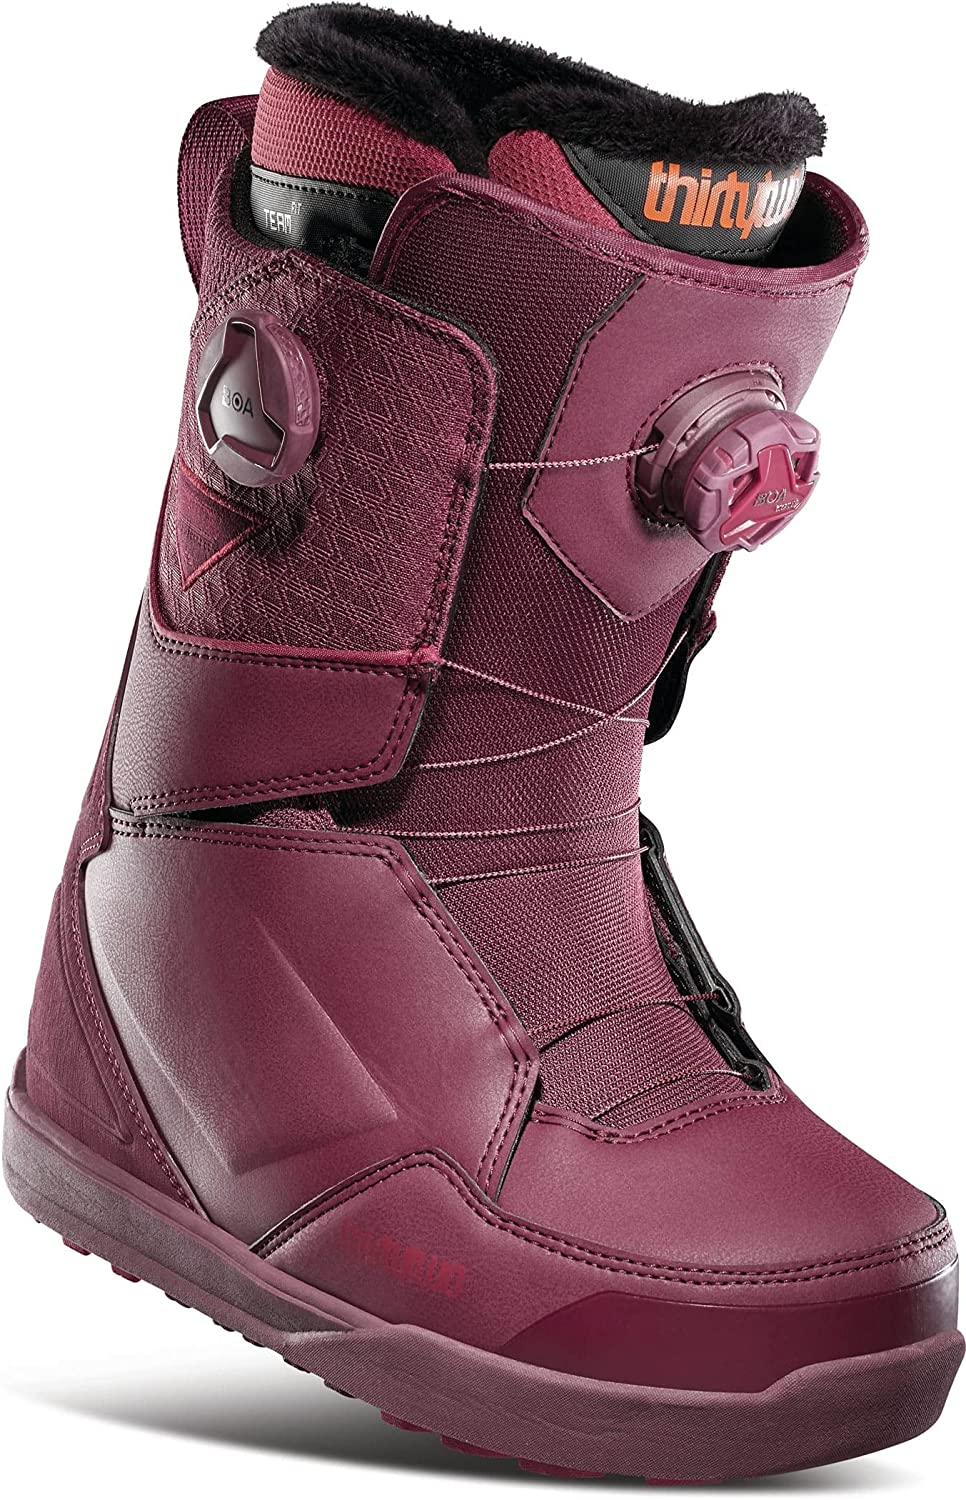 thirtytwo Women's Lashed Double Boa Boot Snowboard 20 Max 54% OFF Soldering '19